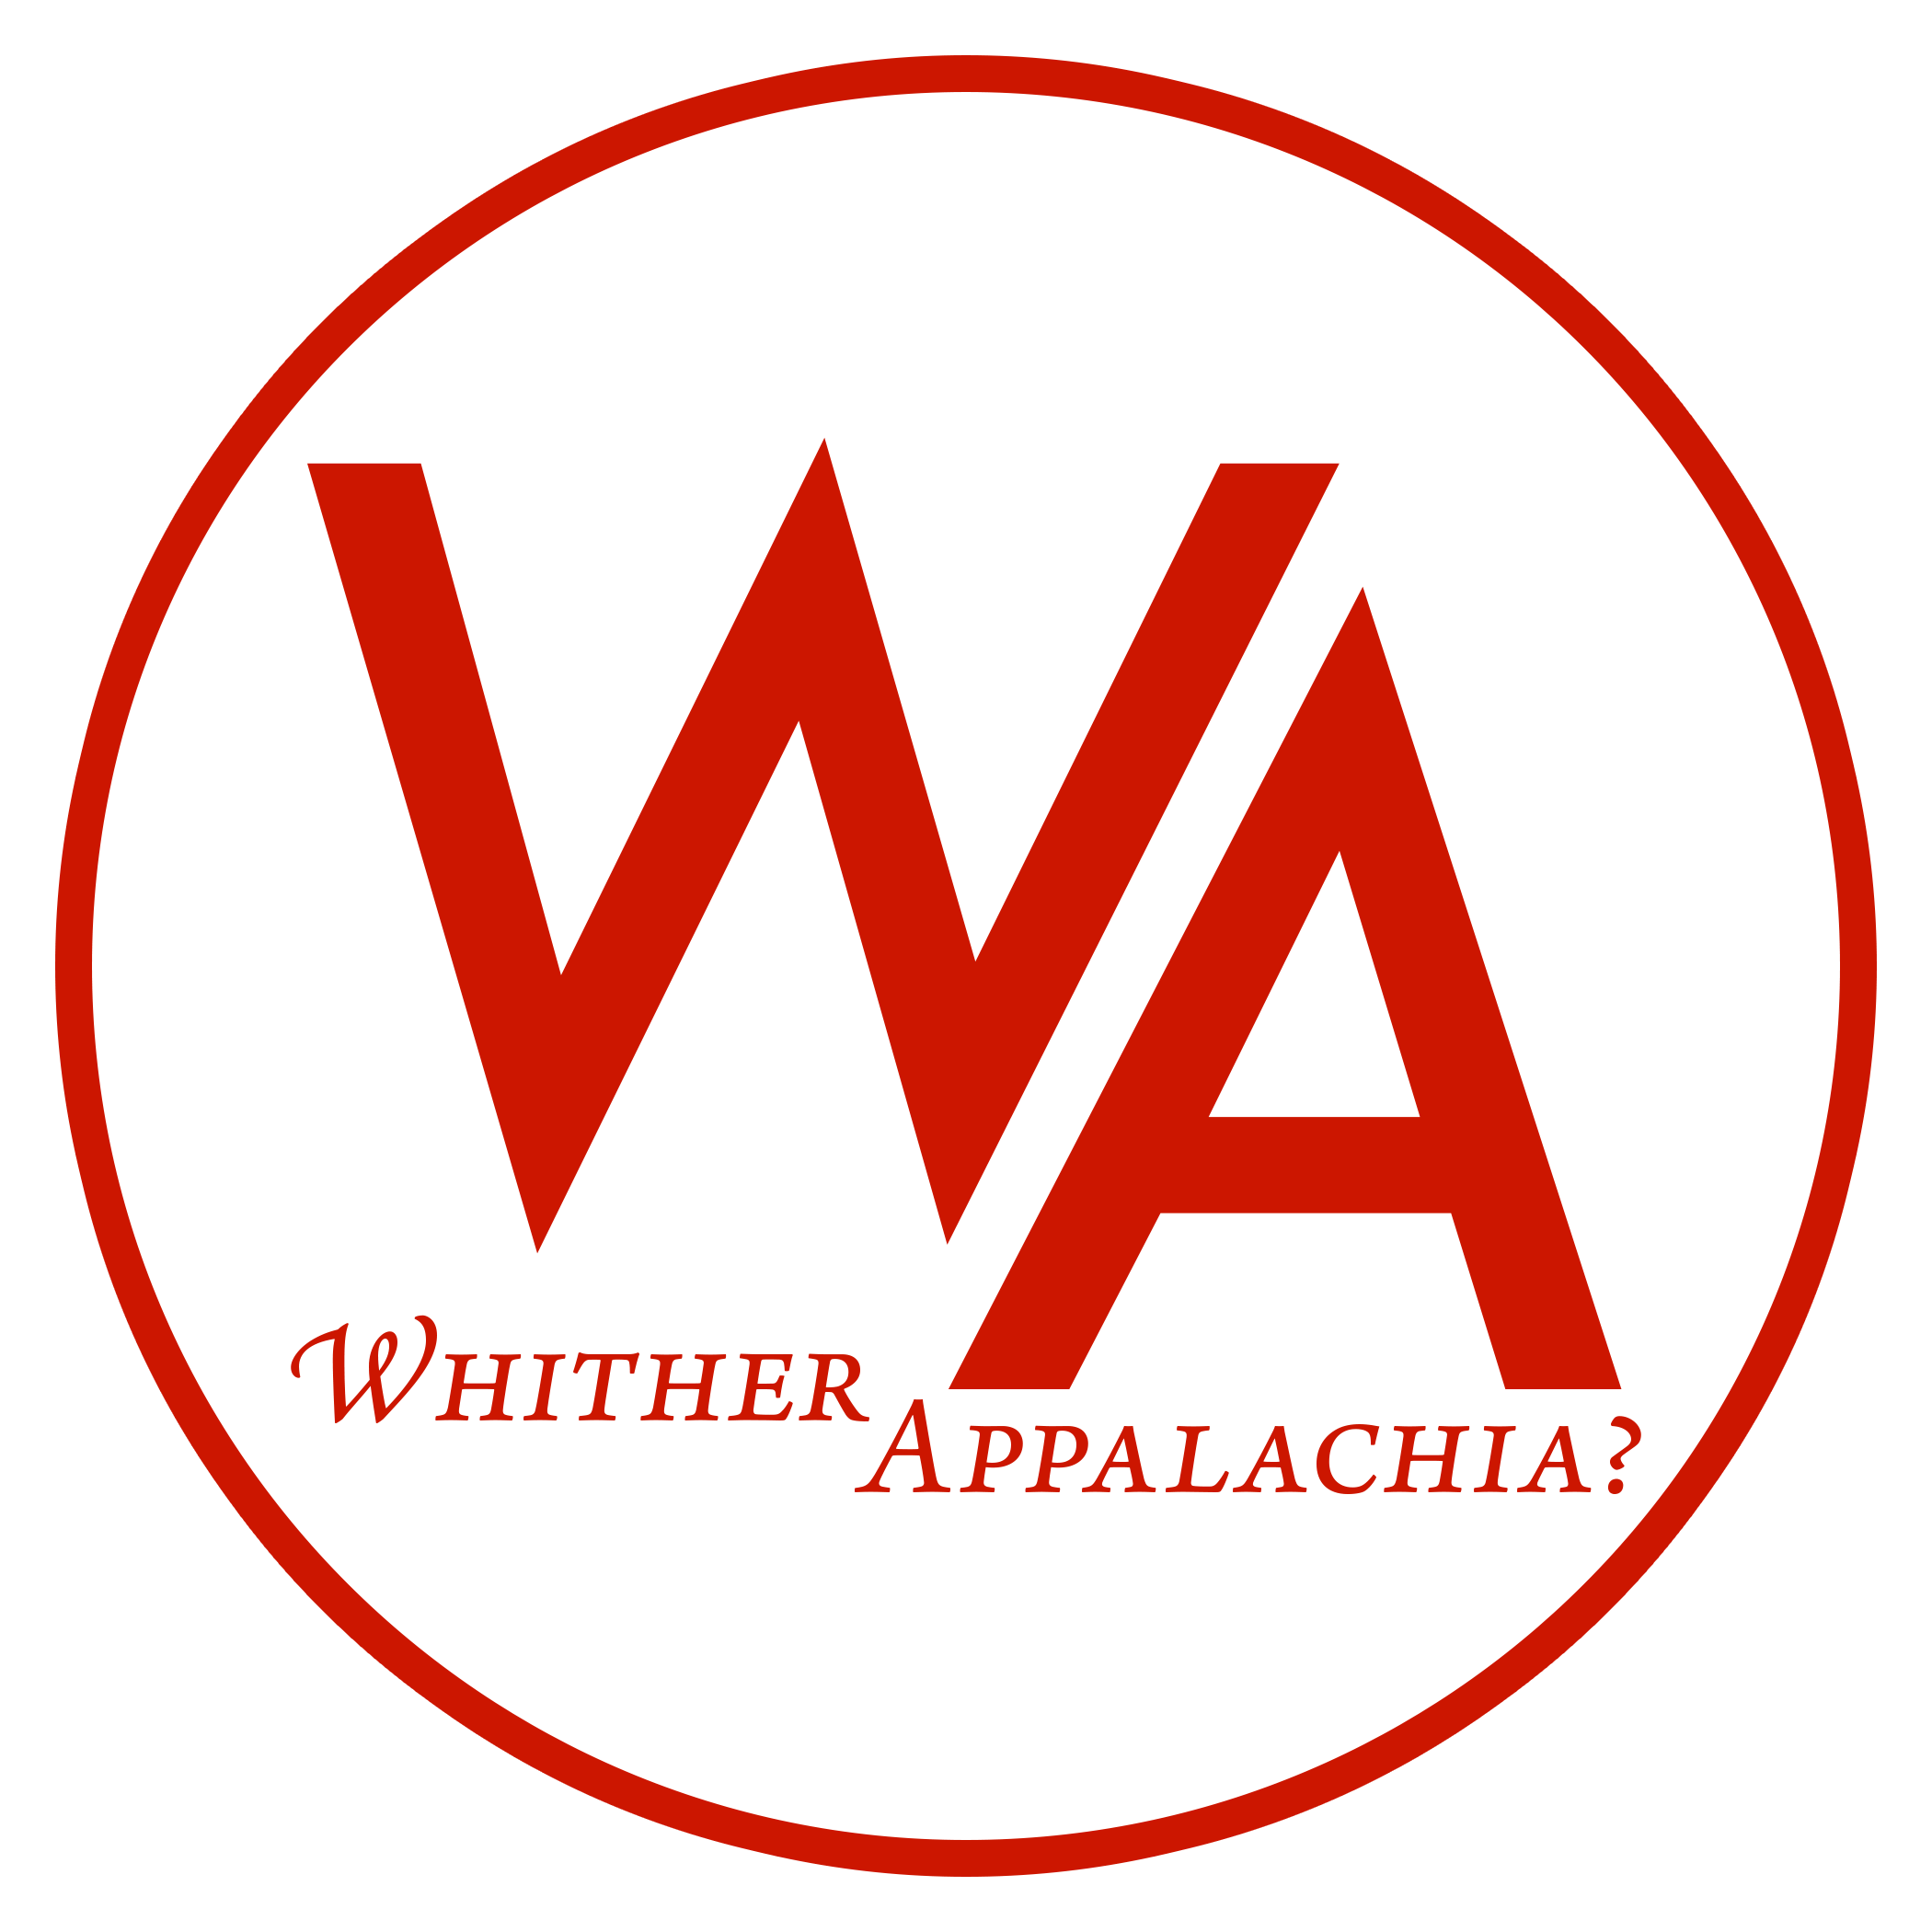 Whither, Appalachia?